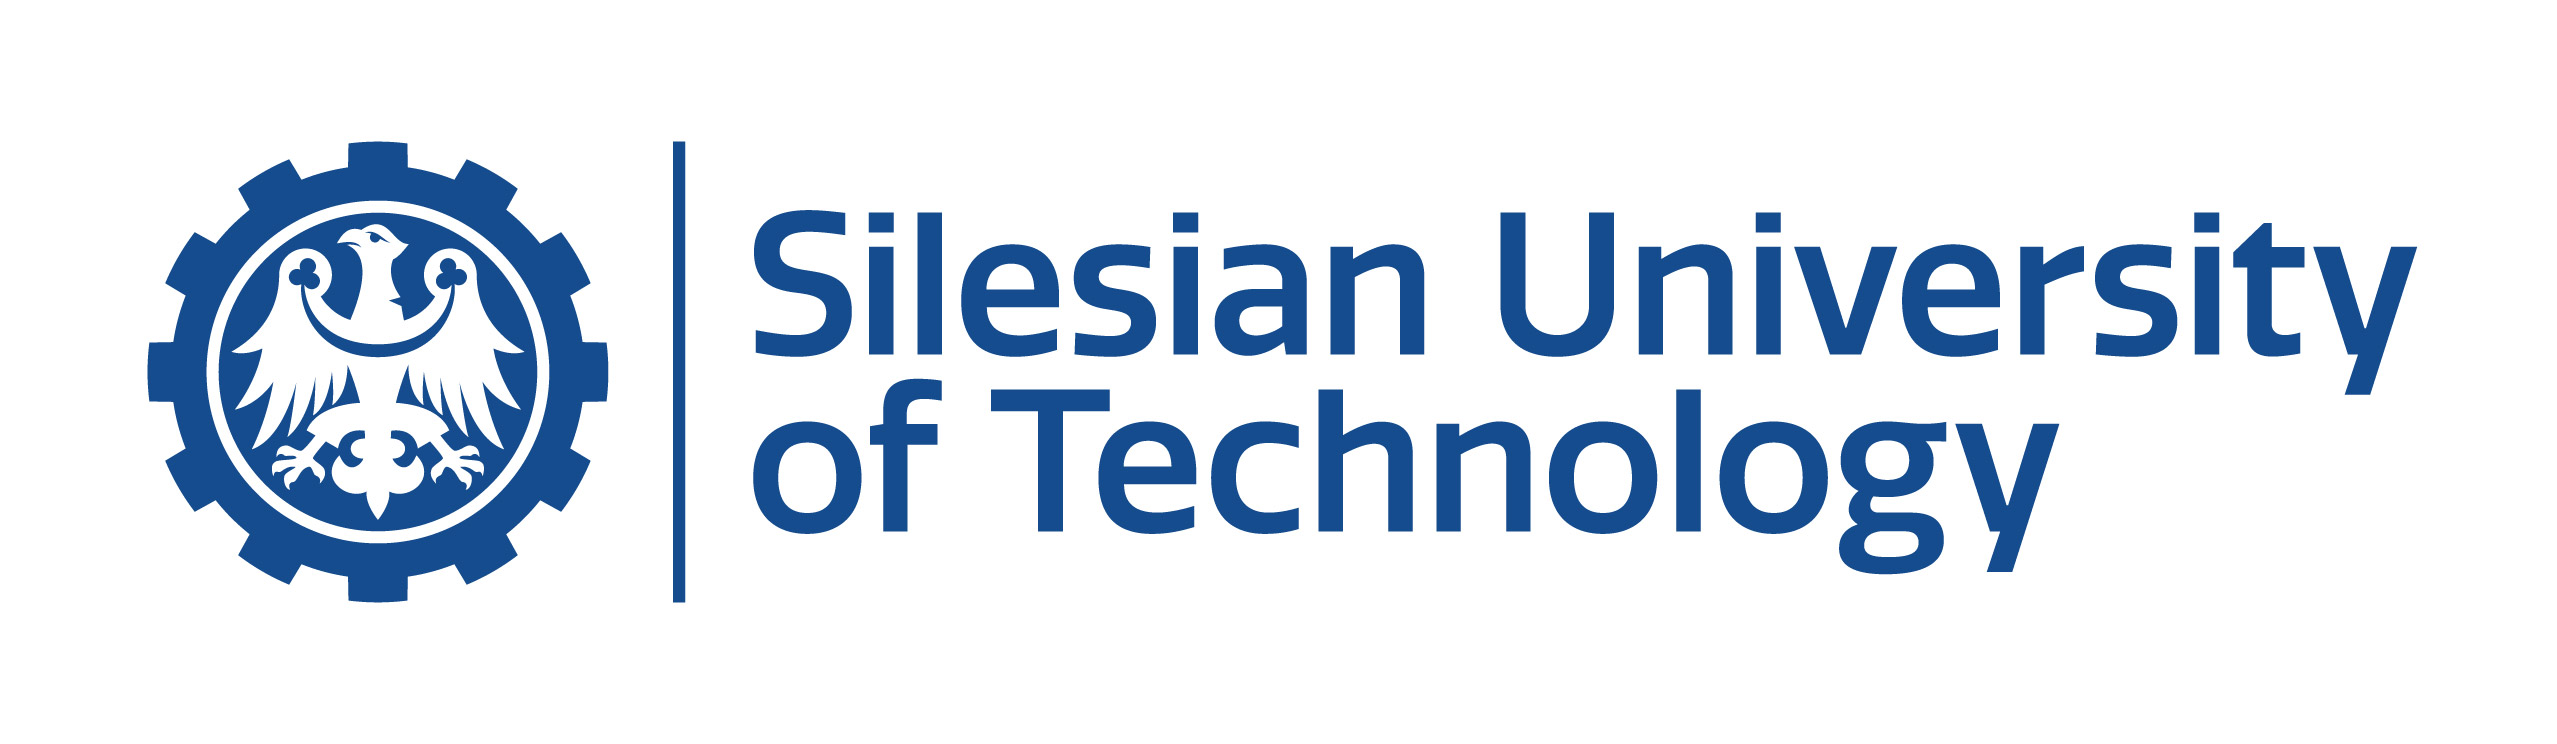 Silesian_University_of_Technology